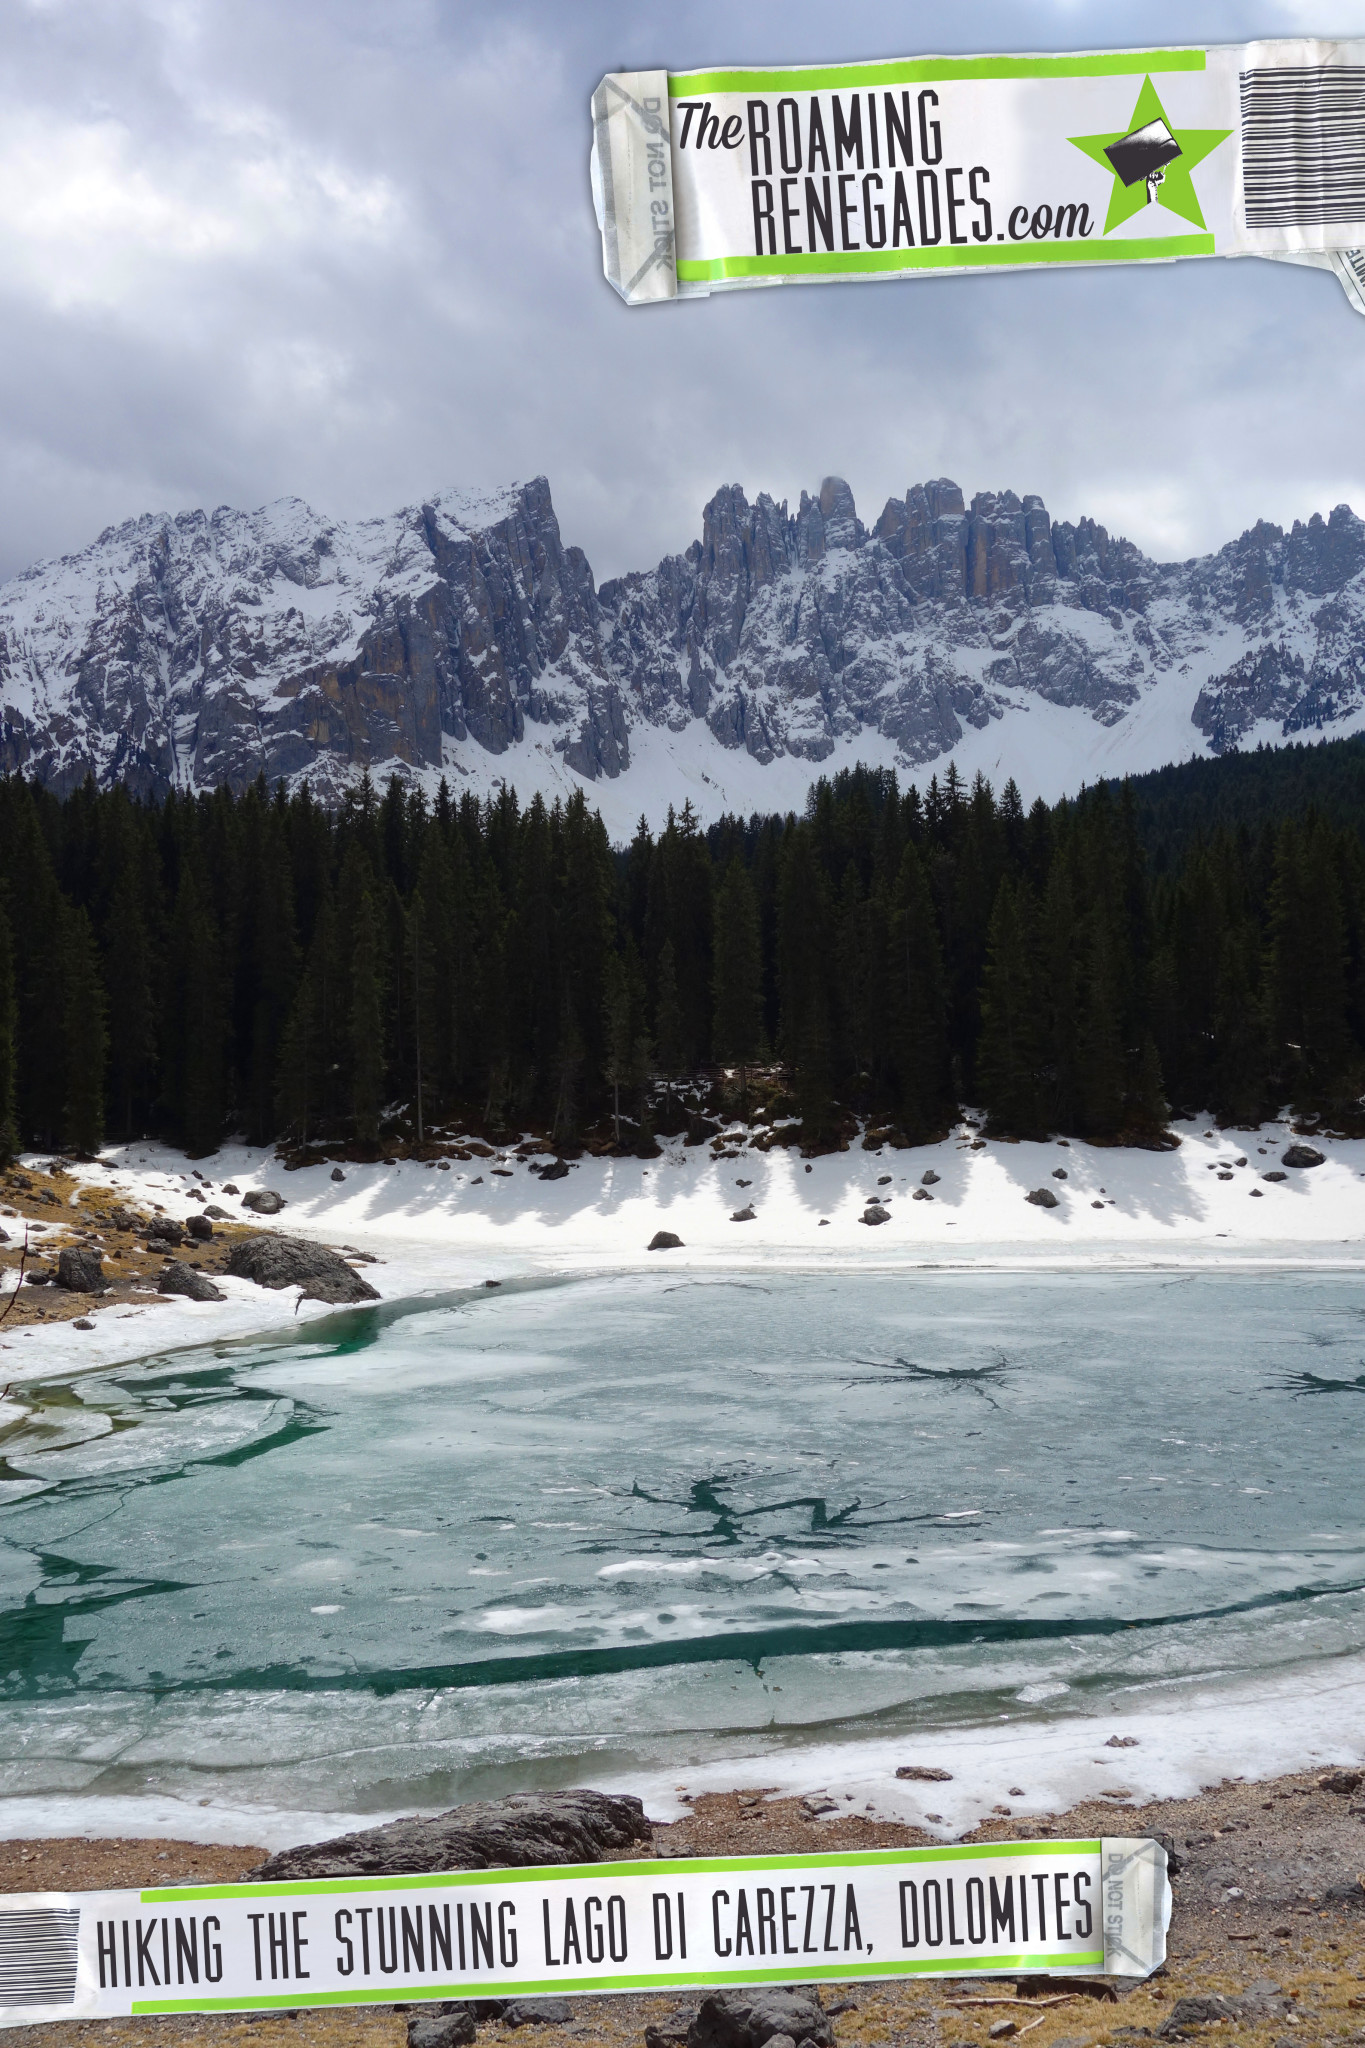 Lago di Carezza - The amazing Dolomites! > https://theroamingrenegades.com/2016/04/lago-di-carezza-the-amazing-dolomites-italy.html